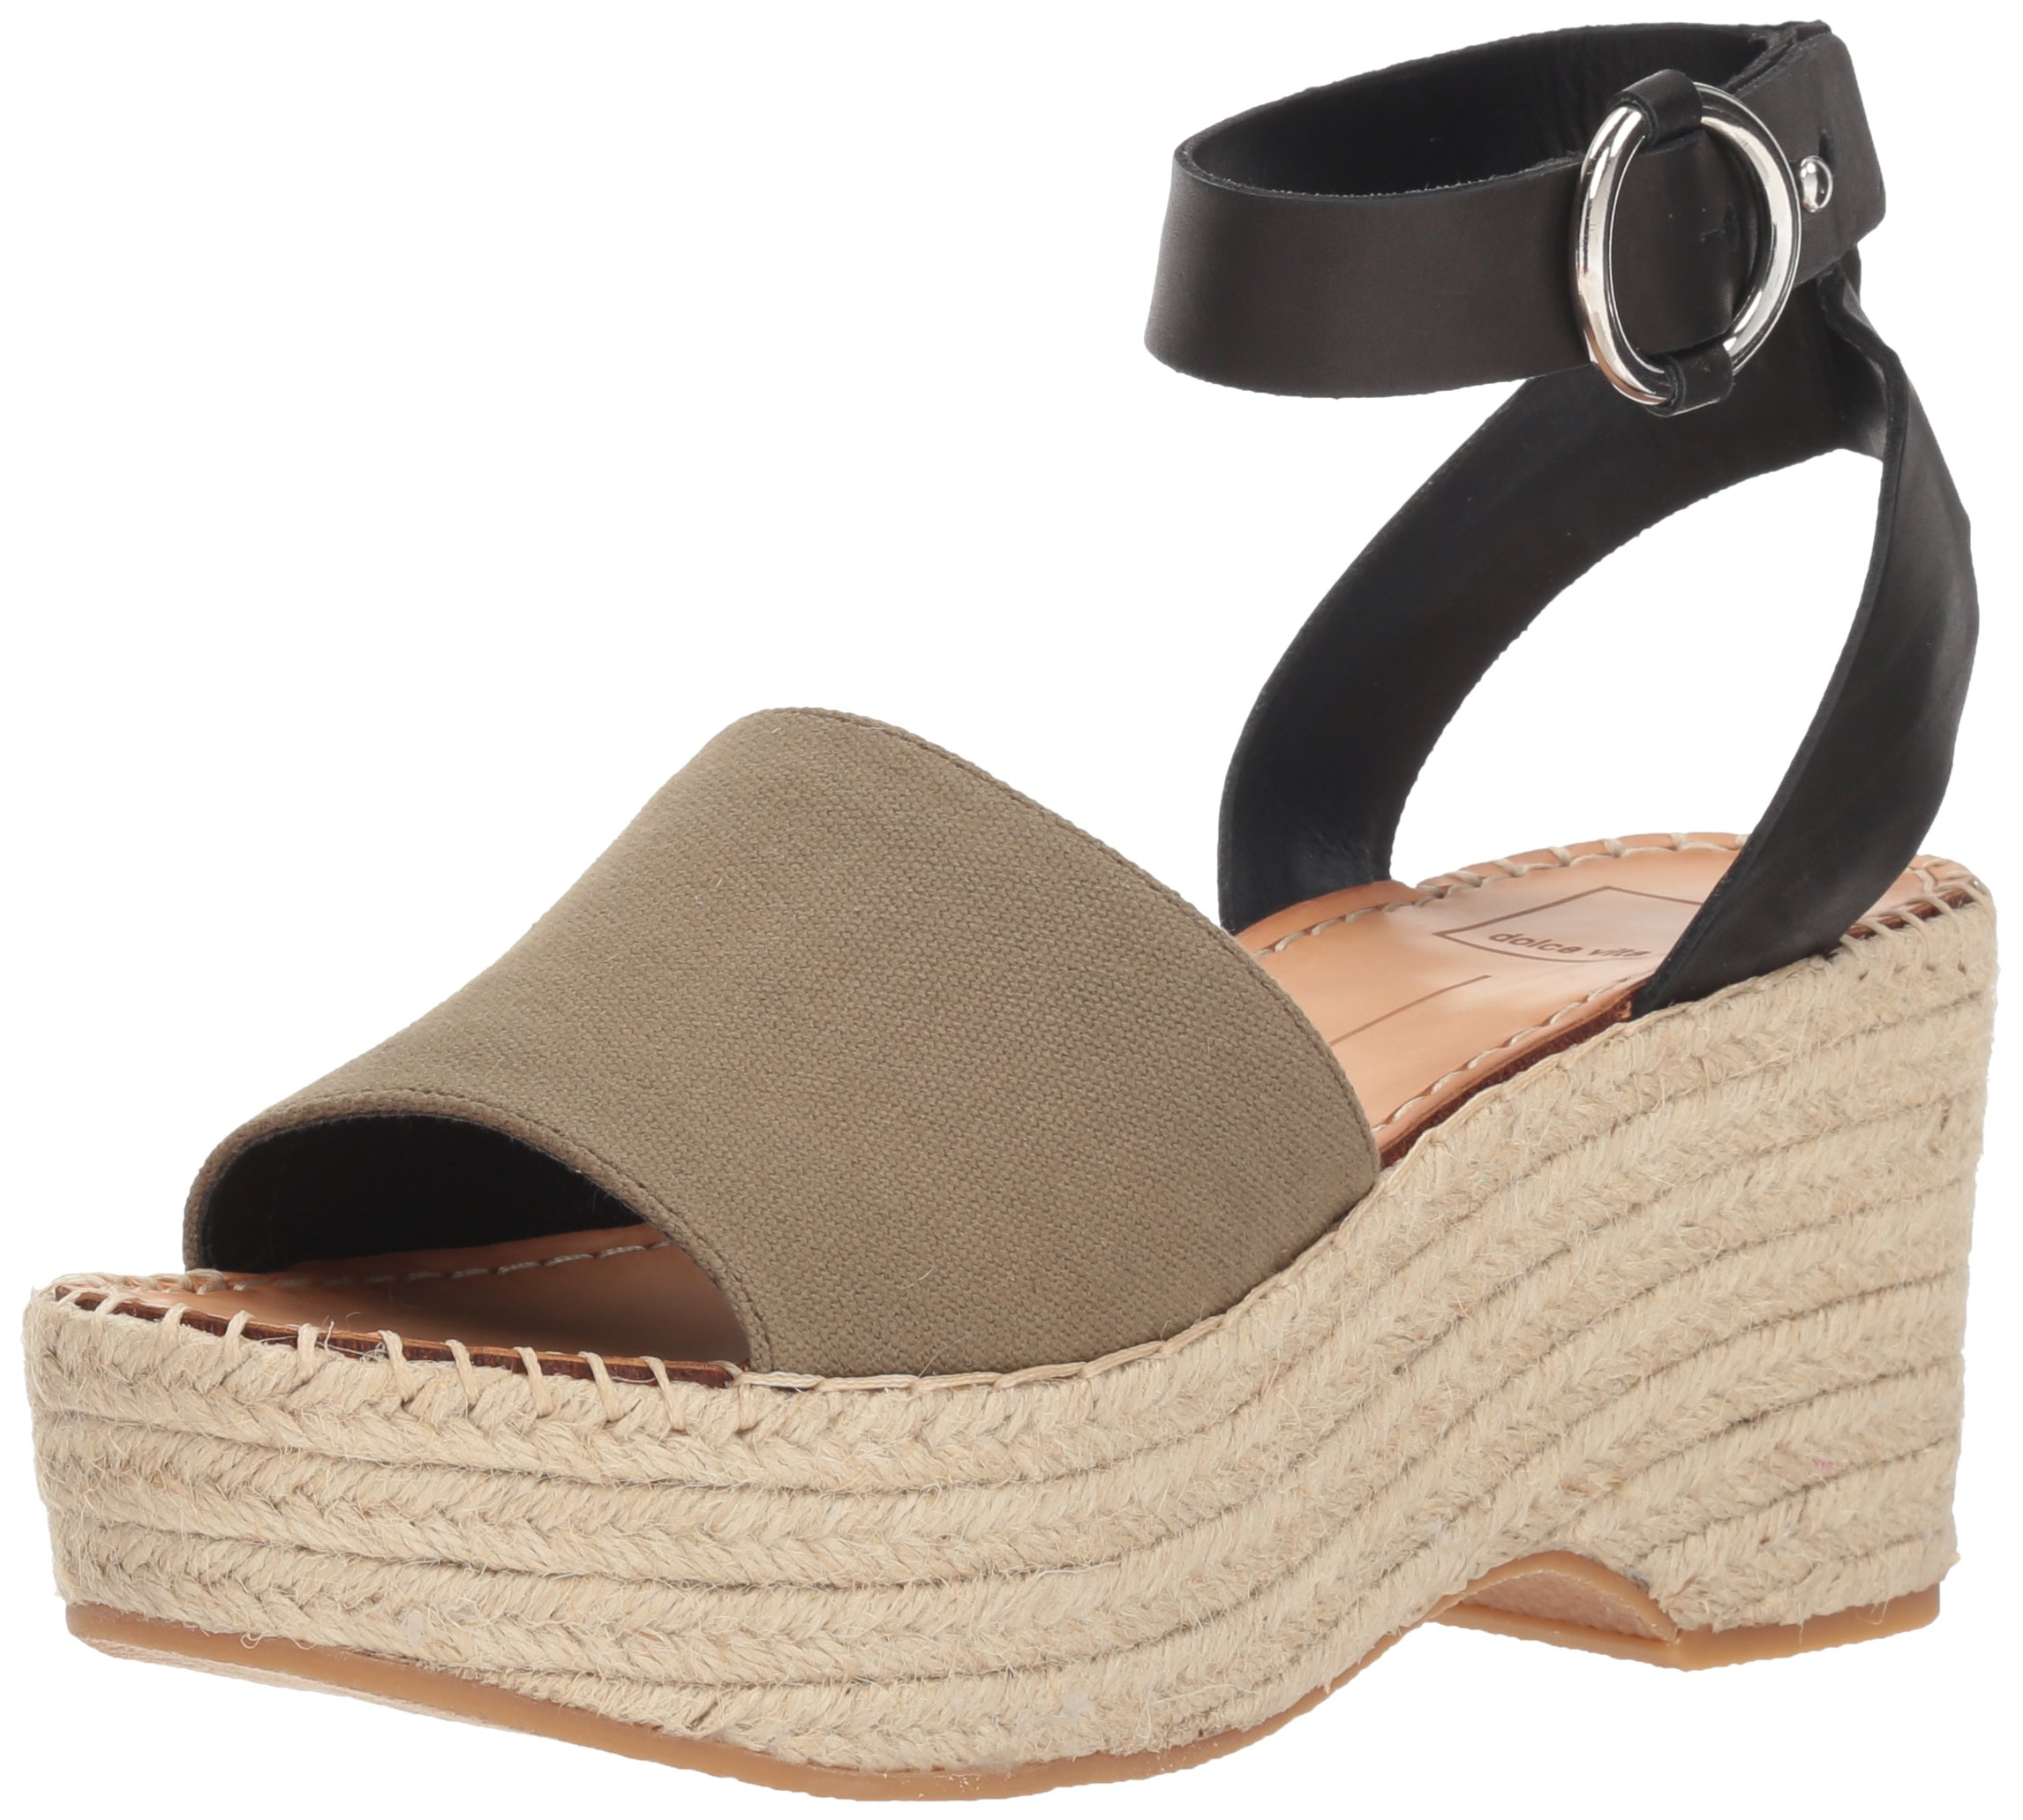 c68ca14a9a13 Galleon - Dolce Vita Women s Lesly Wedge Sandal